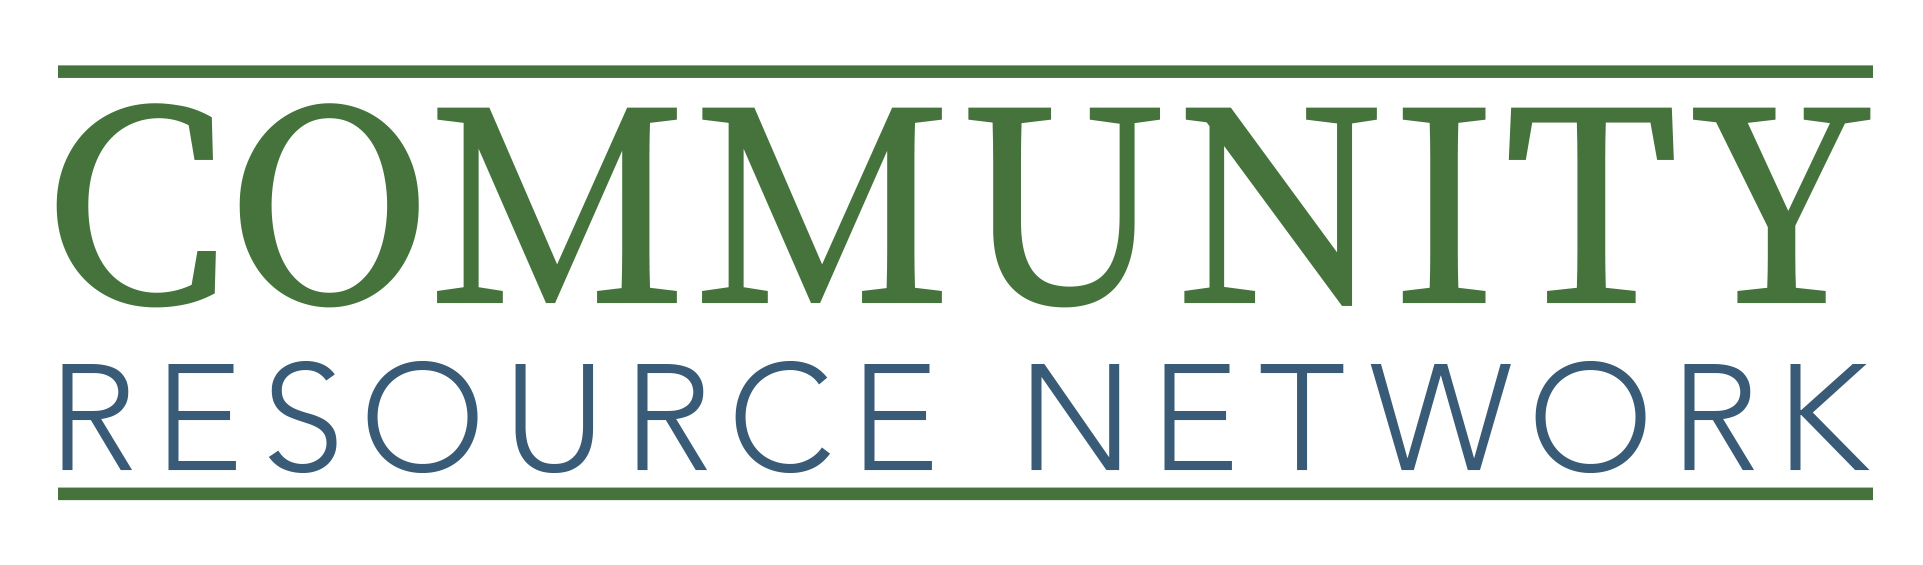 Community Resource Network